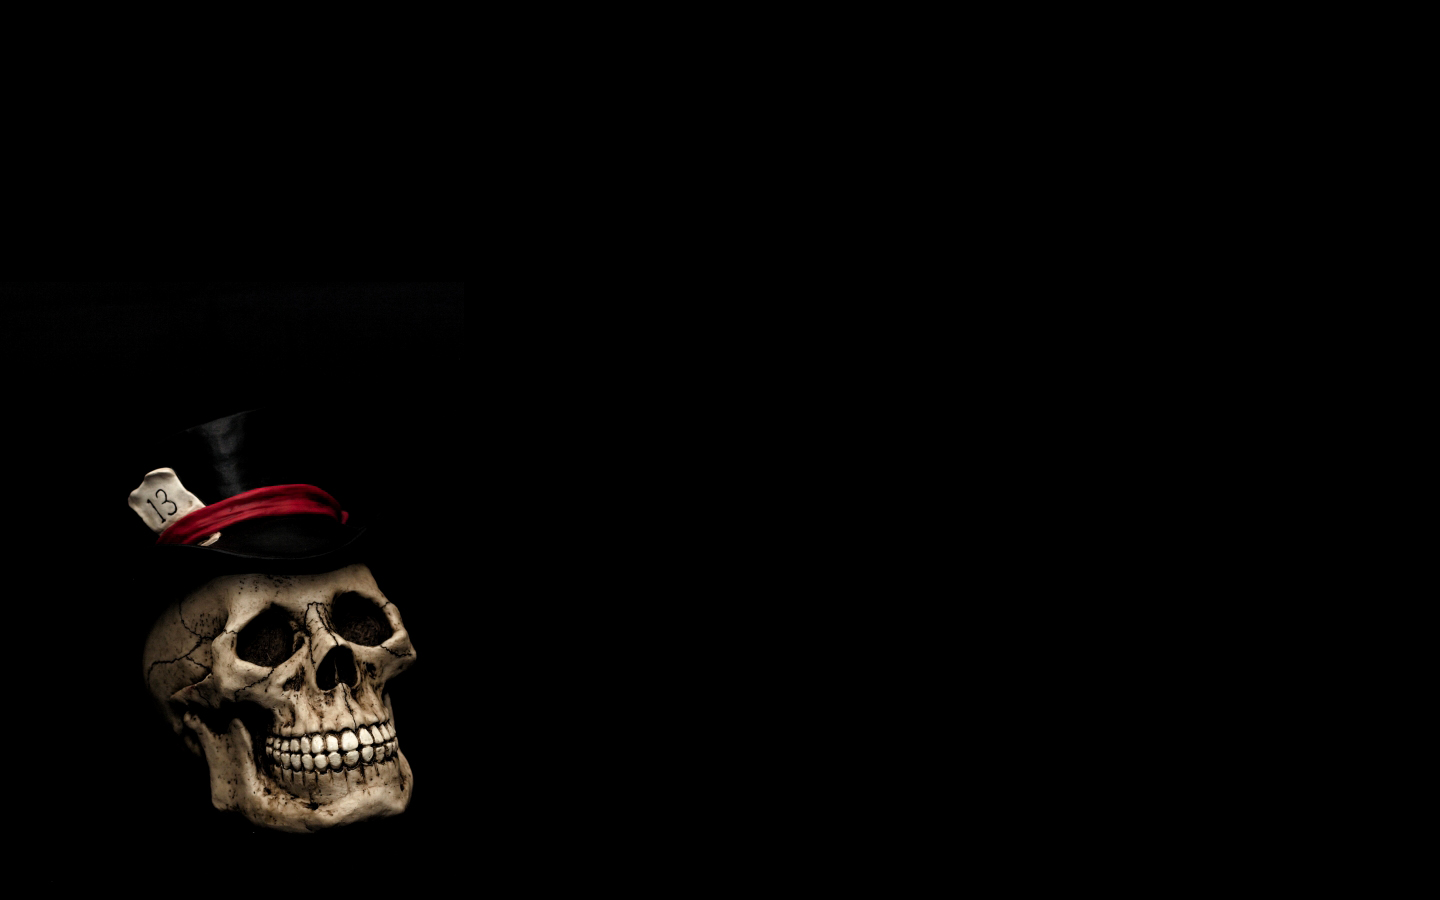 skull wallpaper wallpapers hd - photo #29